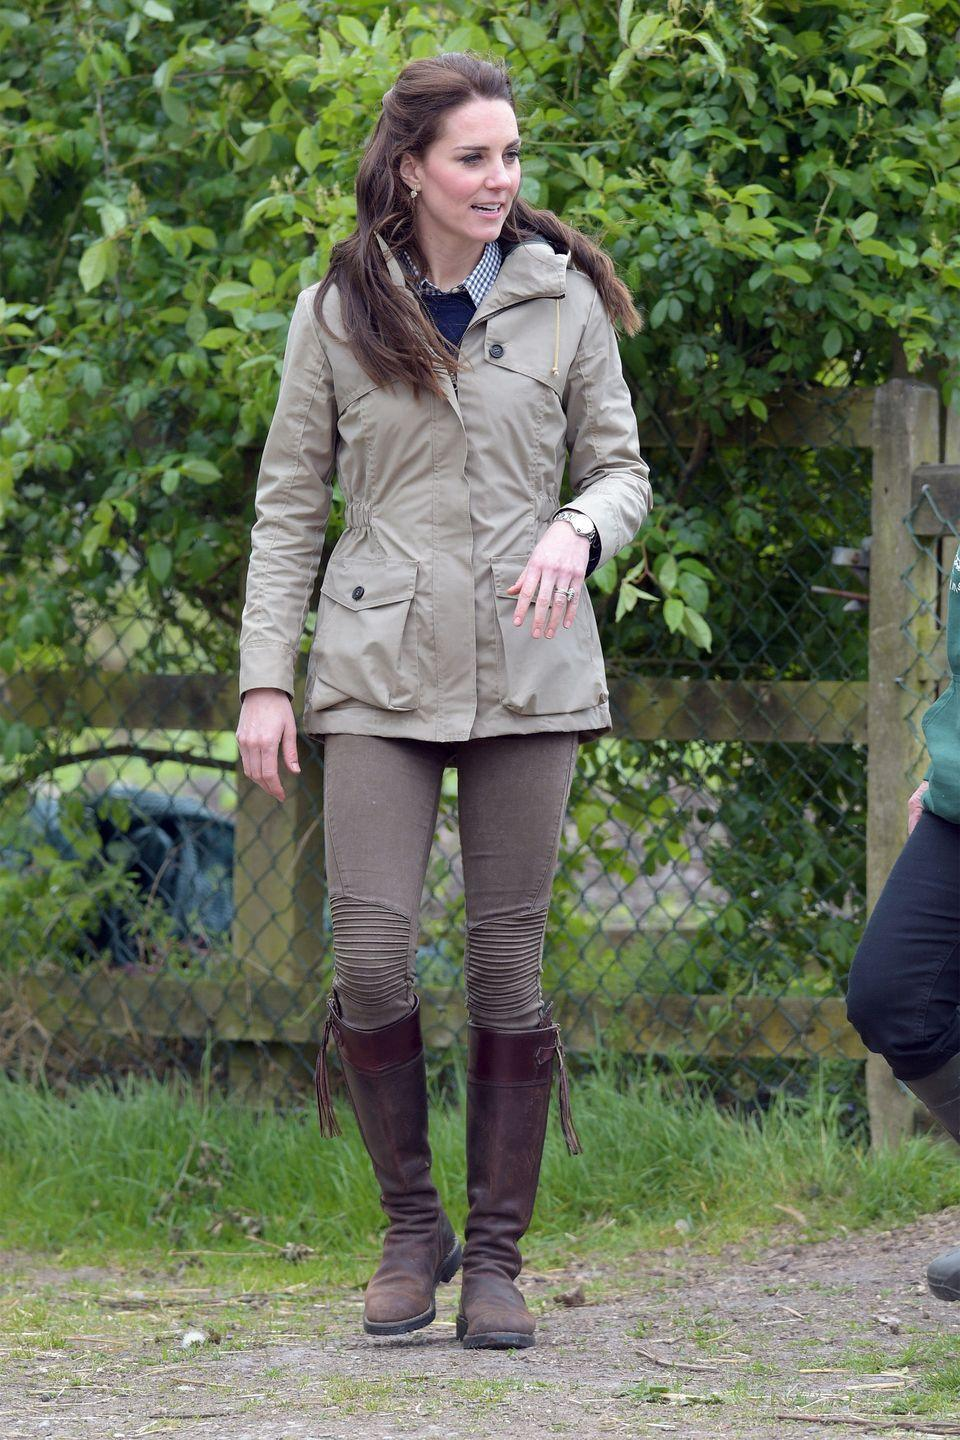 <p>In a navy sweater over a checkered shirt under a beige raincoat with Zara jeans and brown leather boots during a visit to the Farms for City Children charity in Gloucester</p>